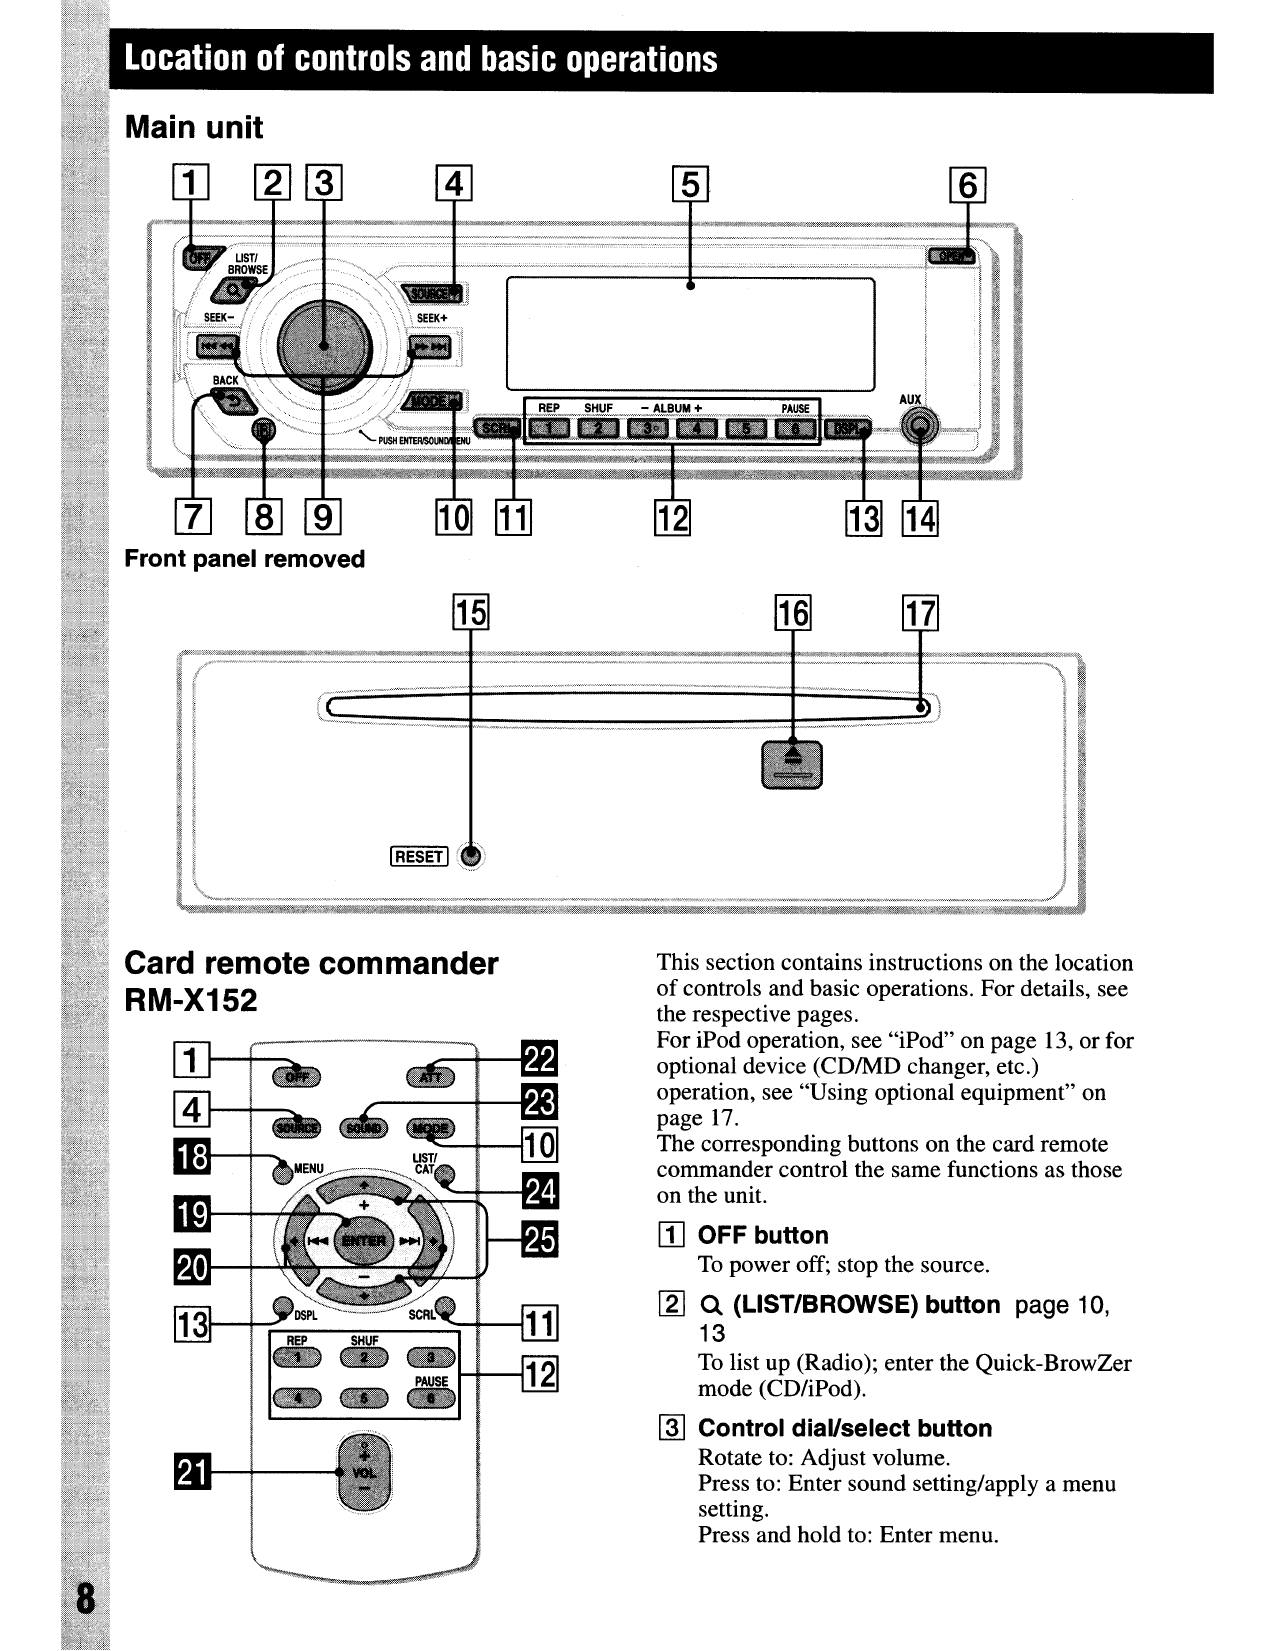 98d sony cdx gt820ip wiring diagram | wiring library  wiring library